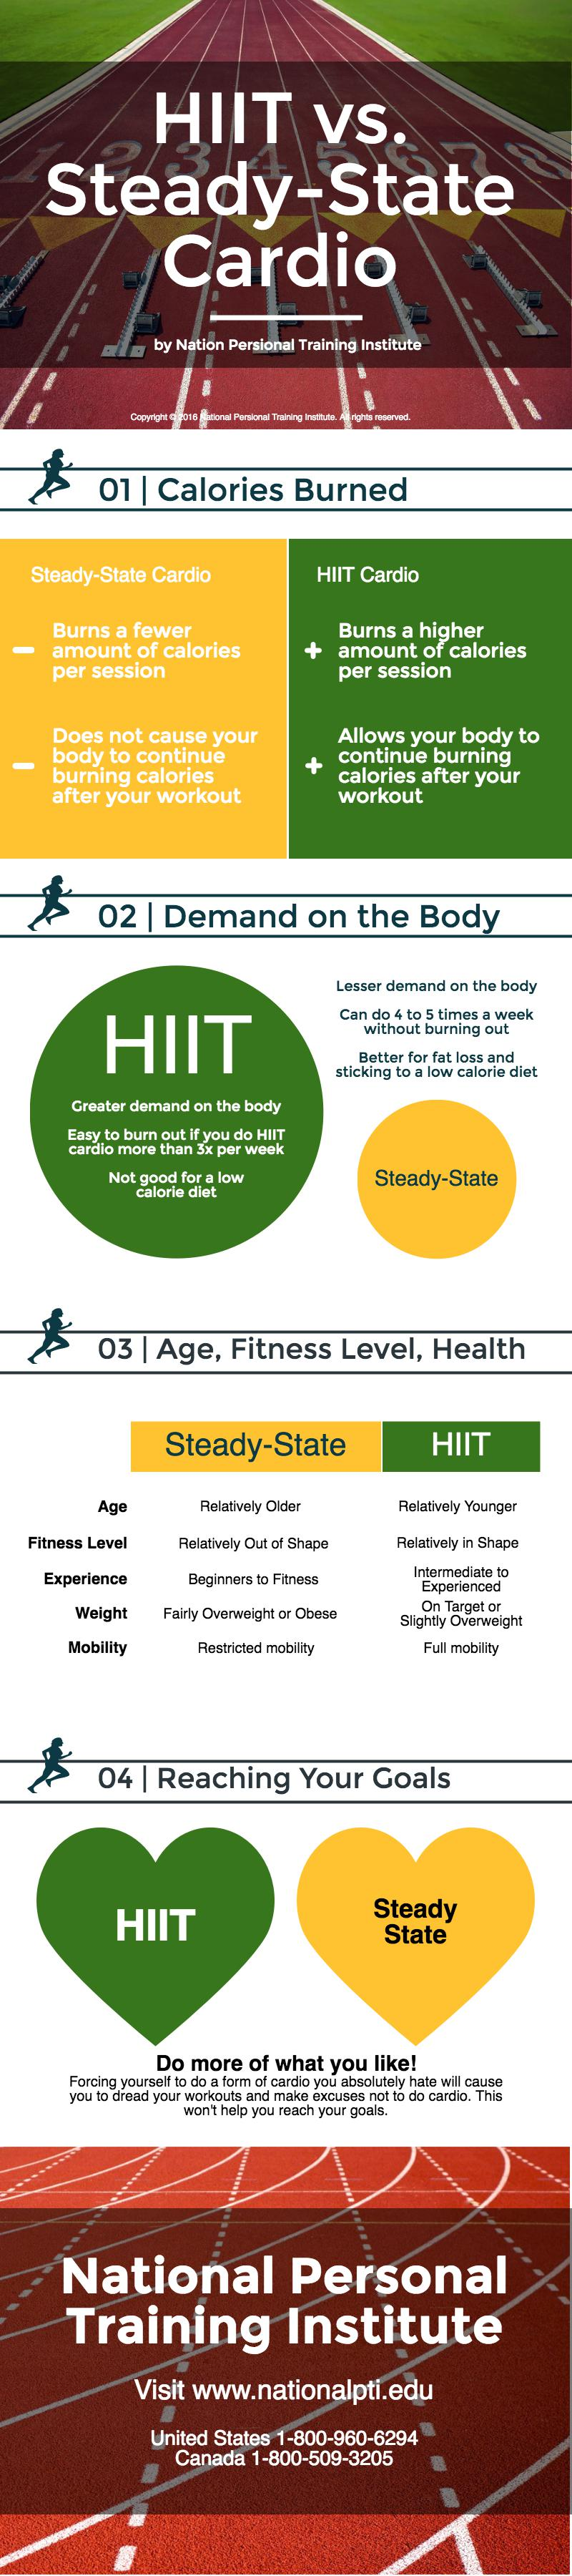 npti-infographic-hiit-vs-steady-state-cardio-october2016